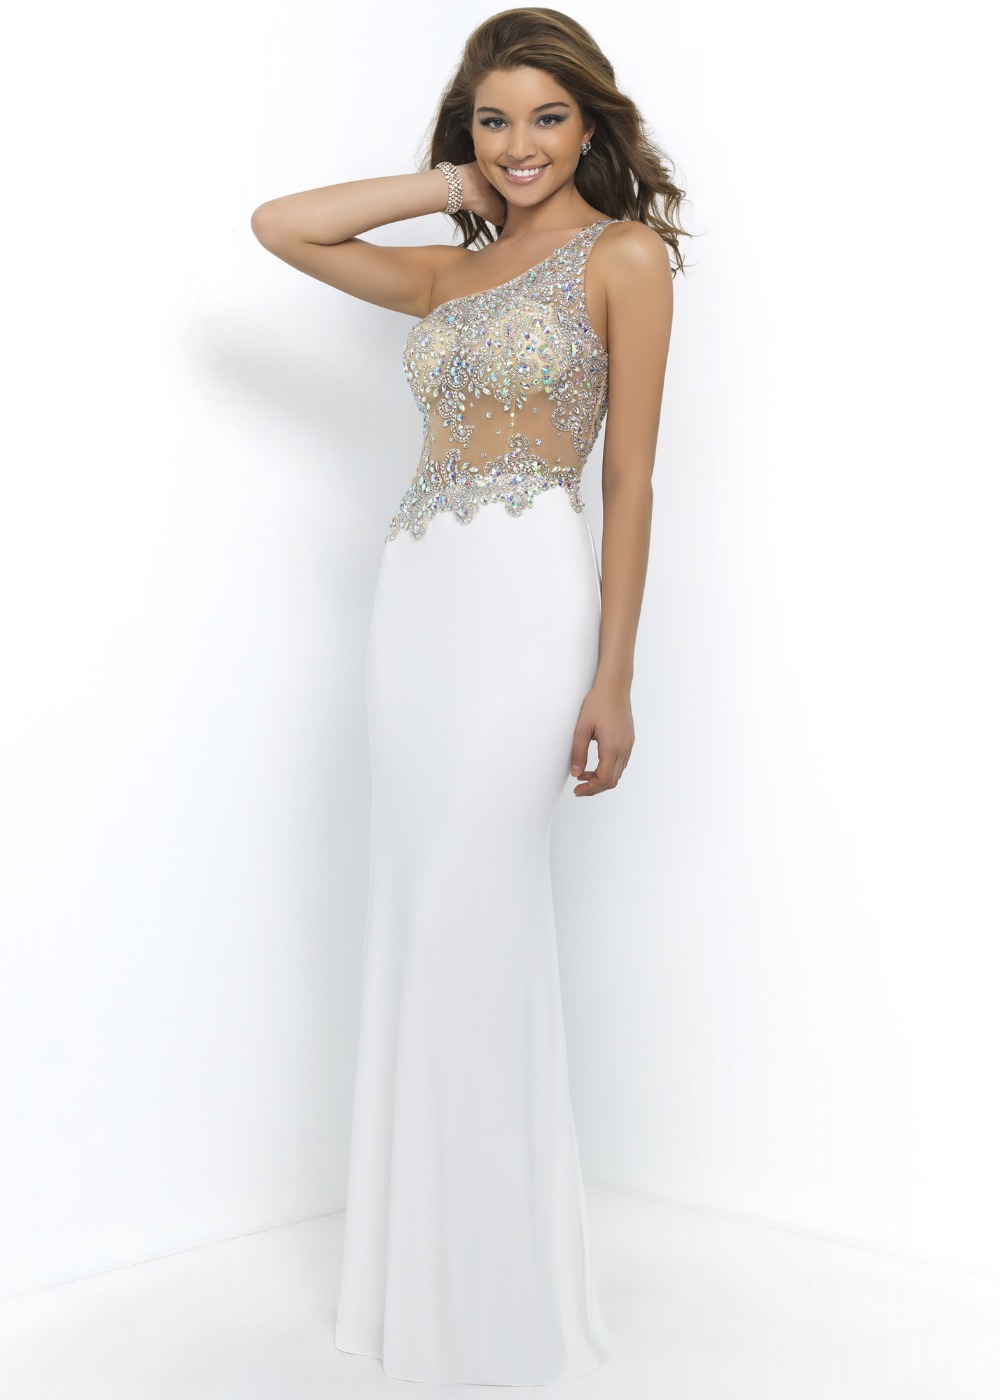 Dorable Prom Dresses Perth Frieze - Wedding Dress Ideas ...